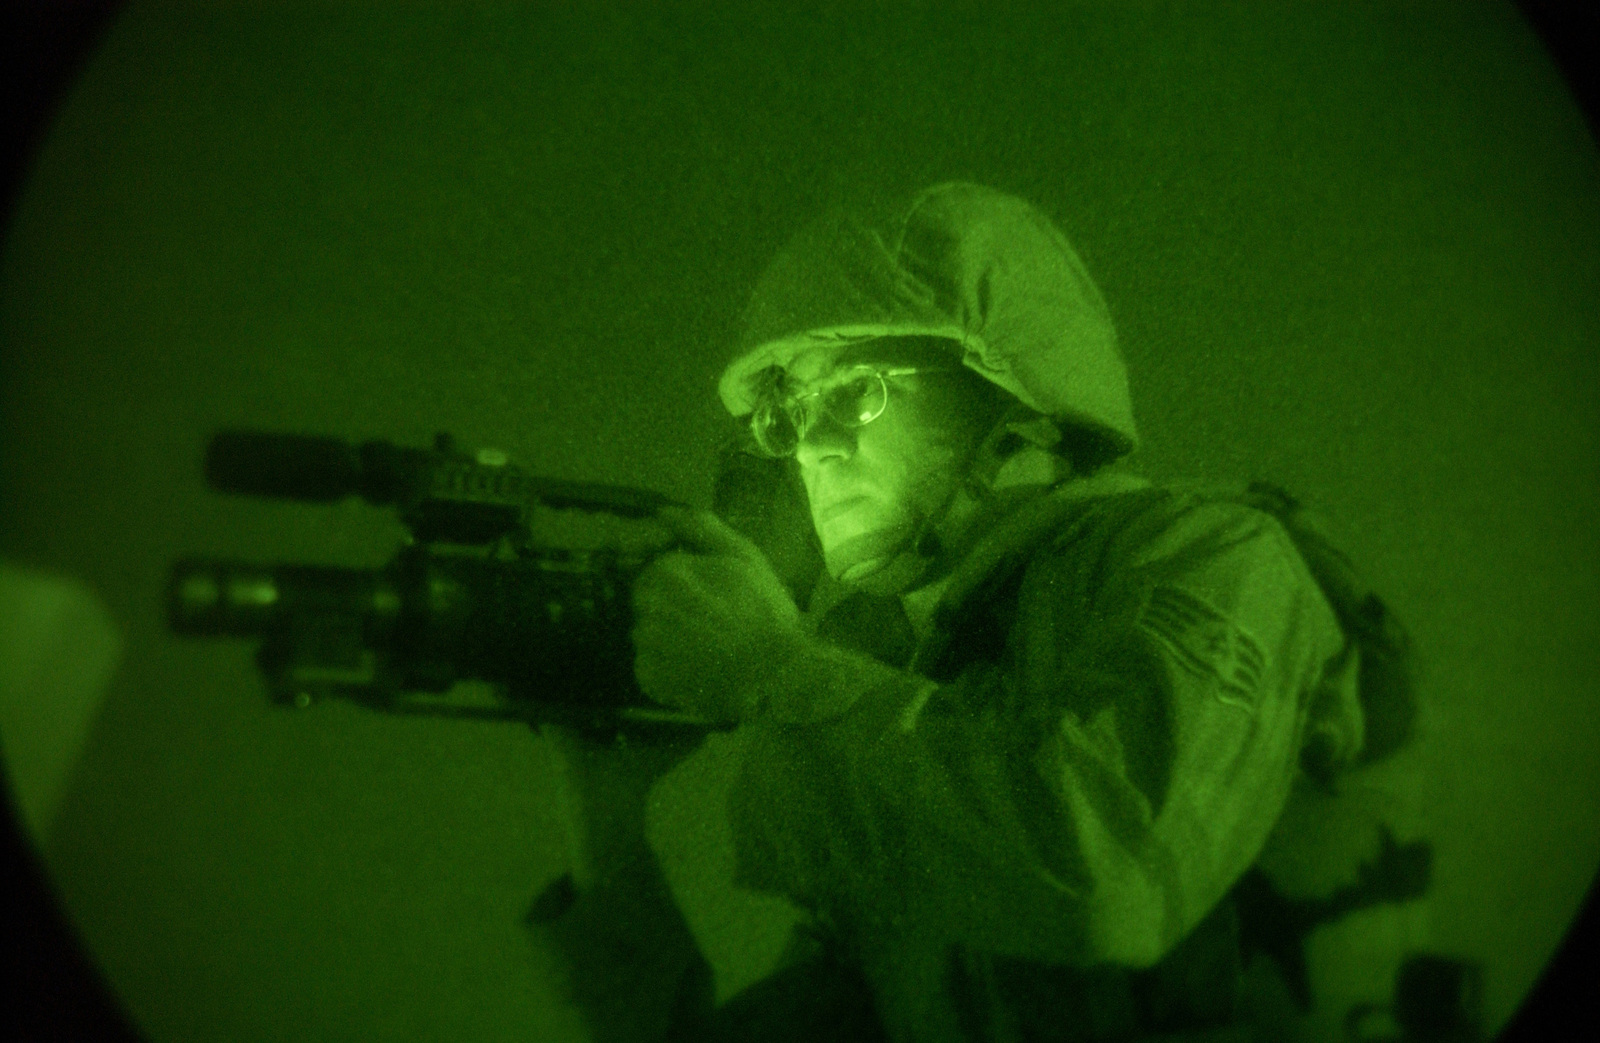 US Air Force (USAF) STAFF Sergeant (SSGT) Kevin Davidson, with the 506th Expeditionary Combat Camera (ECC) Detachment, records operations at Kirkuk Air Base (AB), Iraq, in support of Operation IRAQI FREEDOM